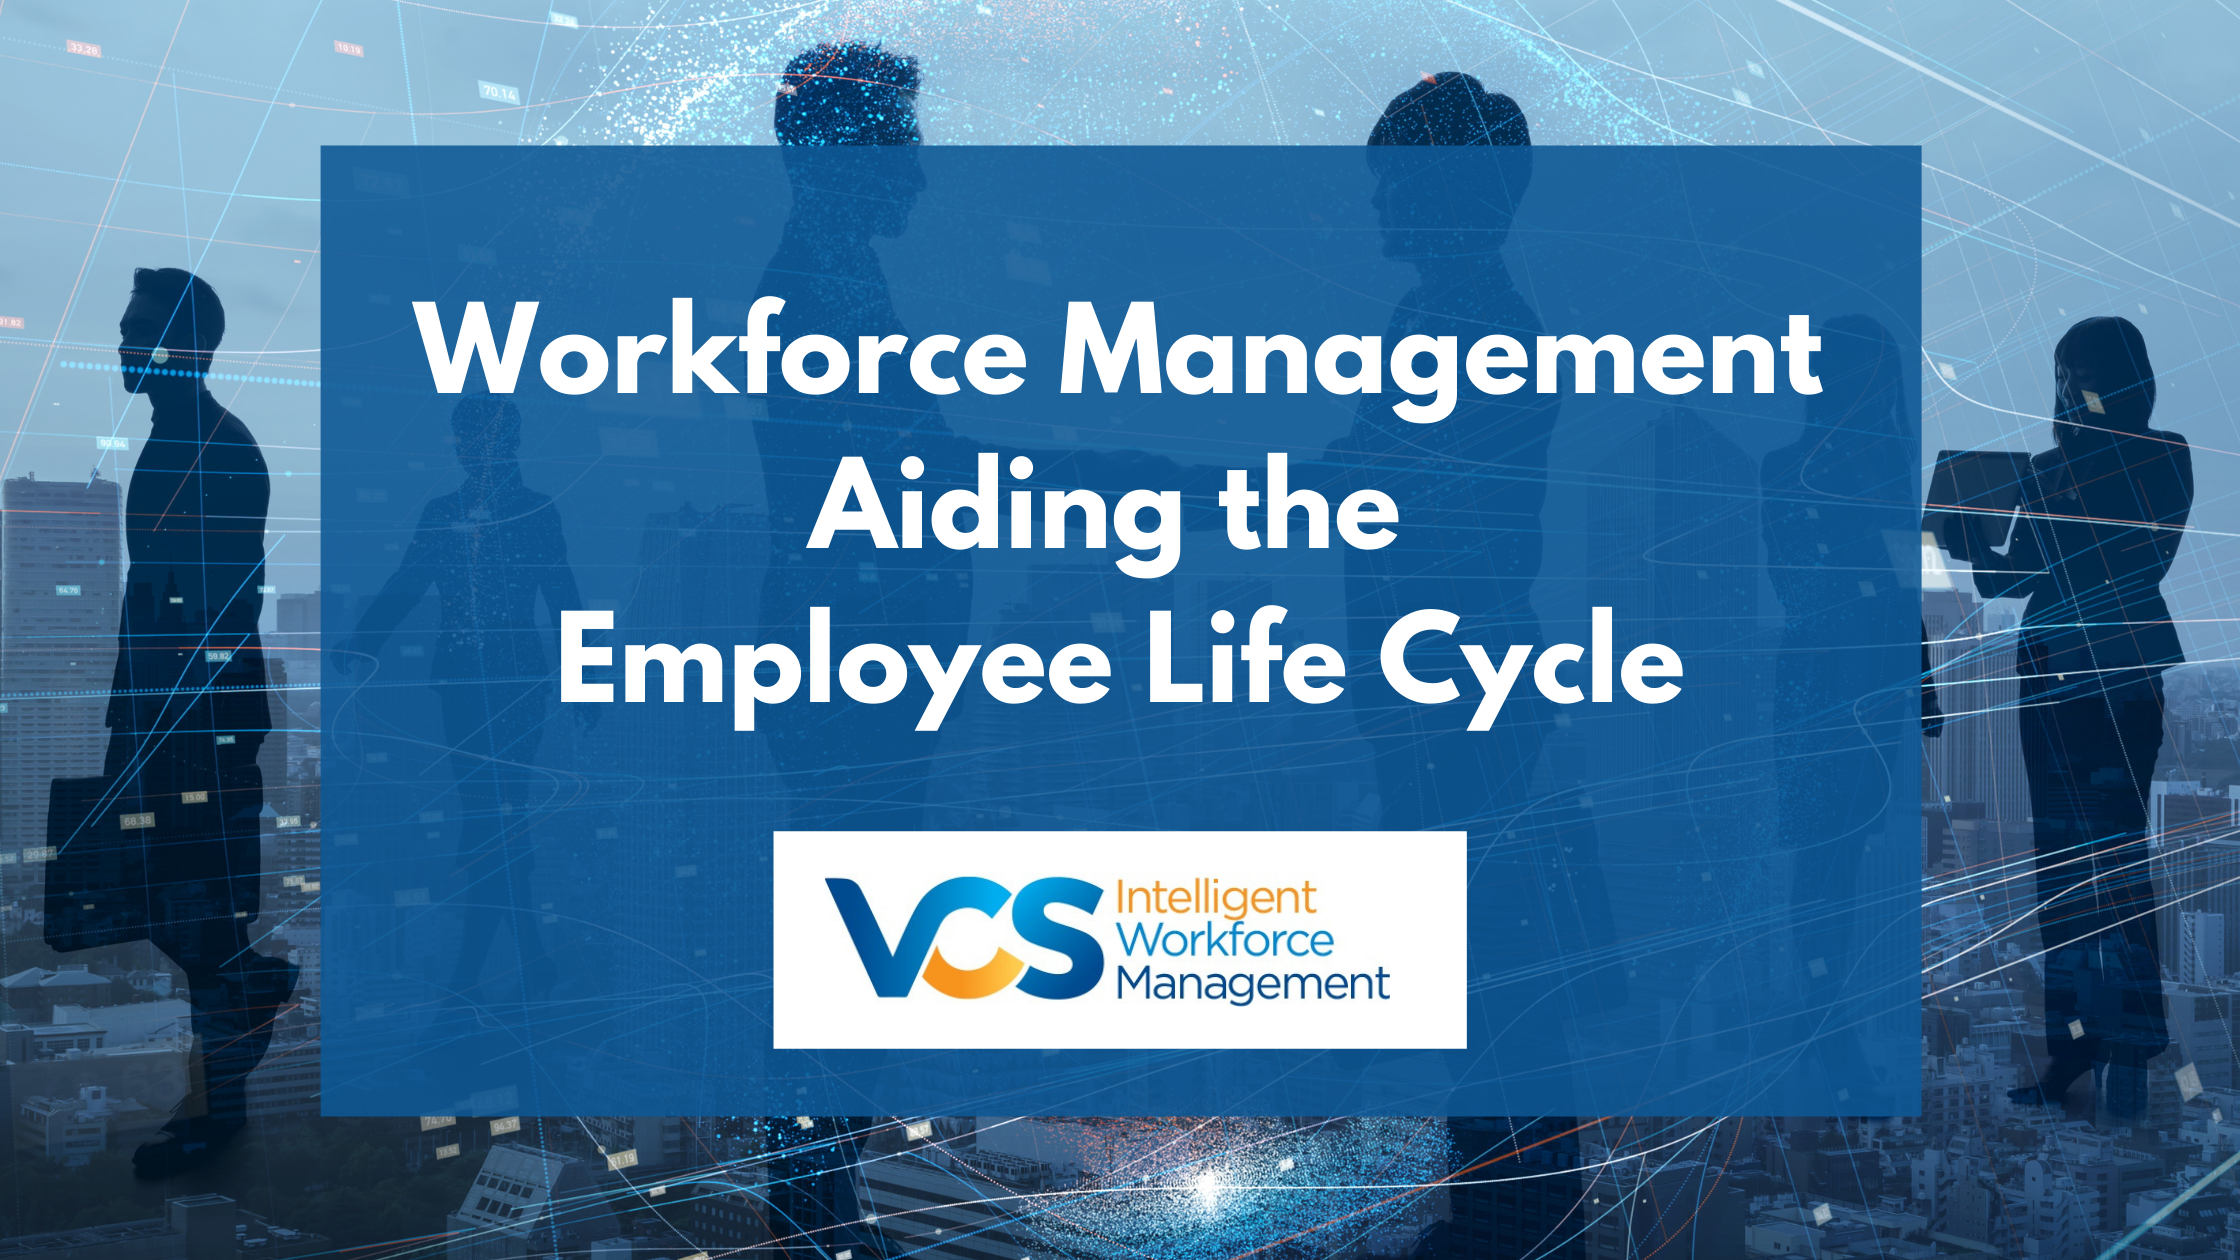 Workforce Management Aiding the Employee Life Cycle